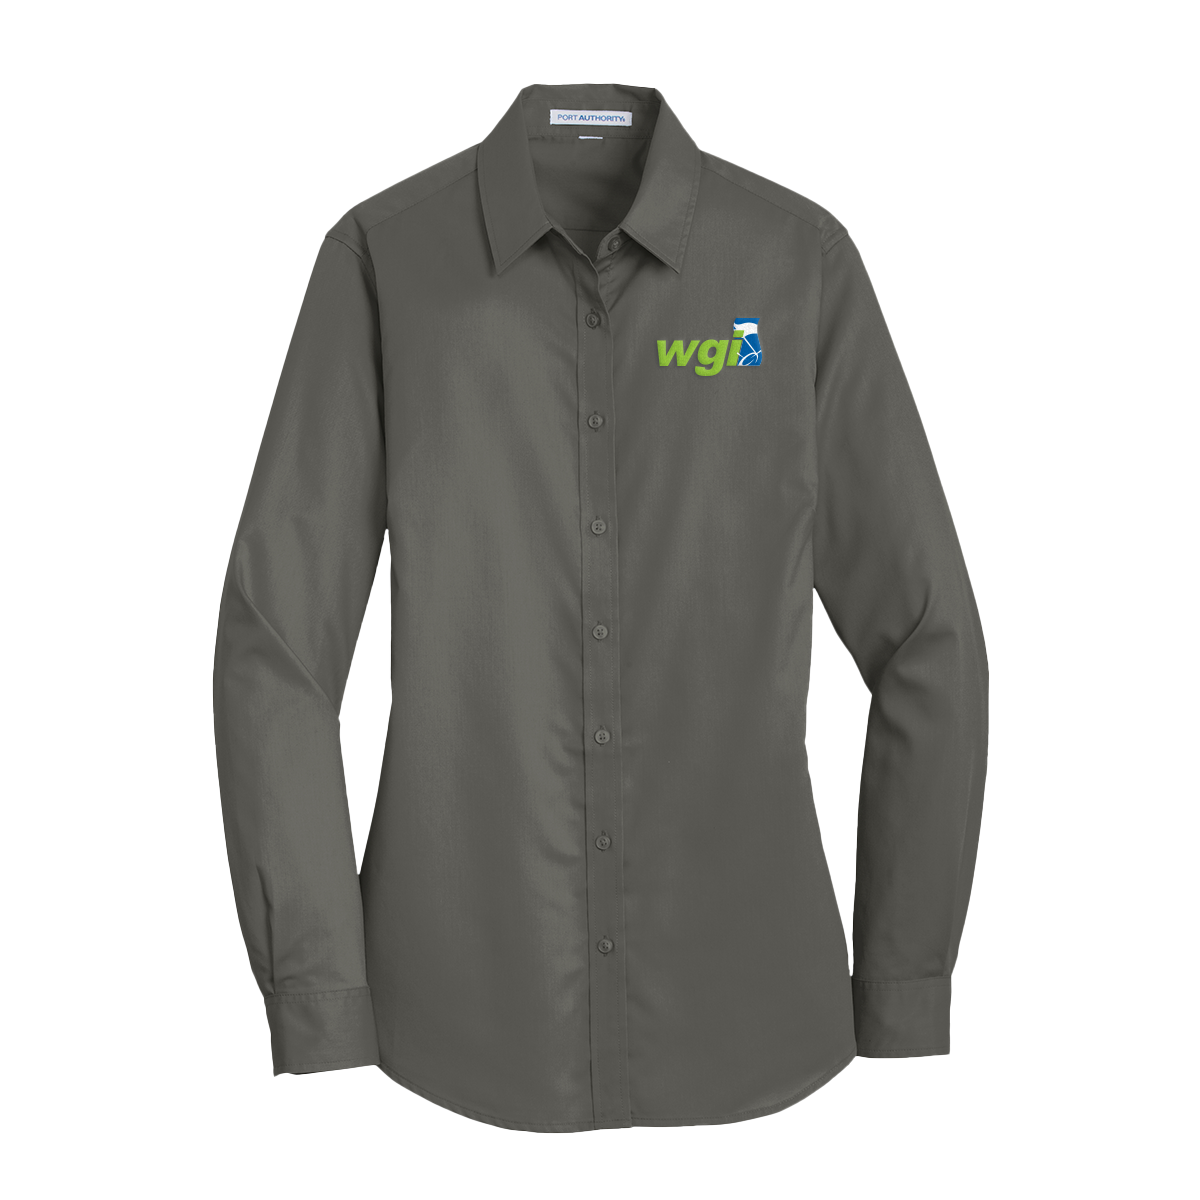 WGI Ladies Button Up Shirt - Online Exclusive